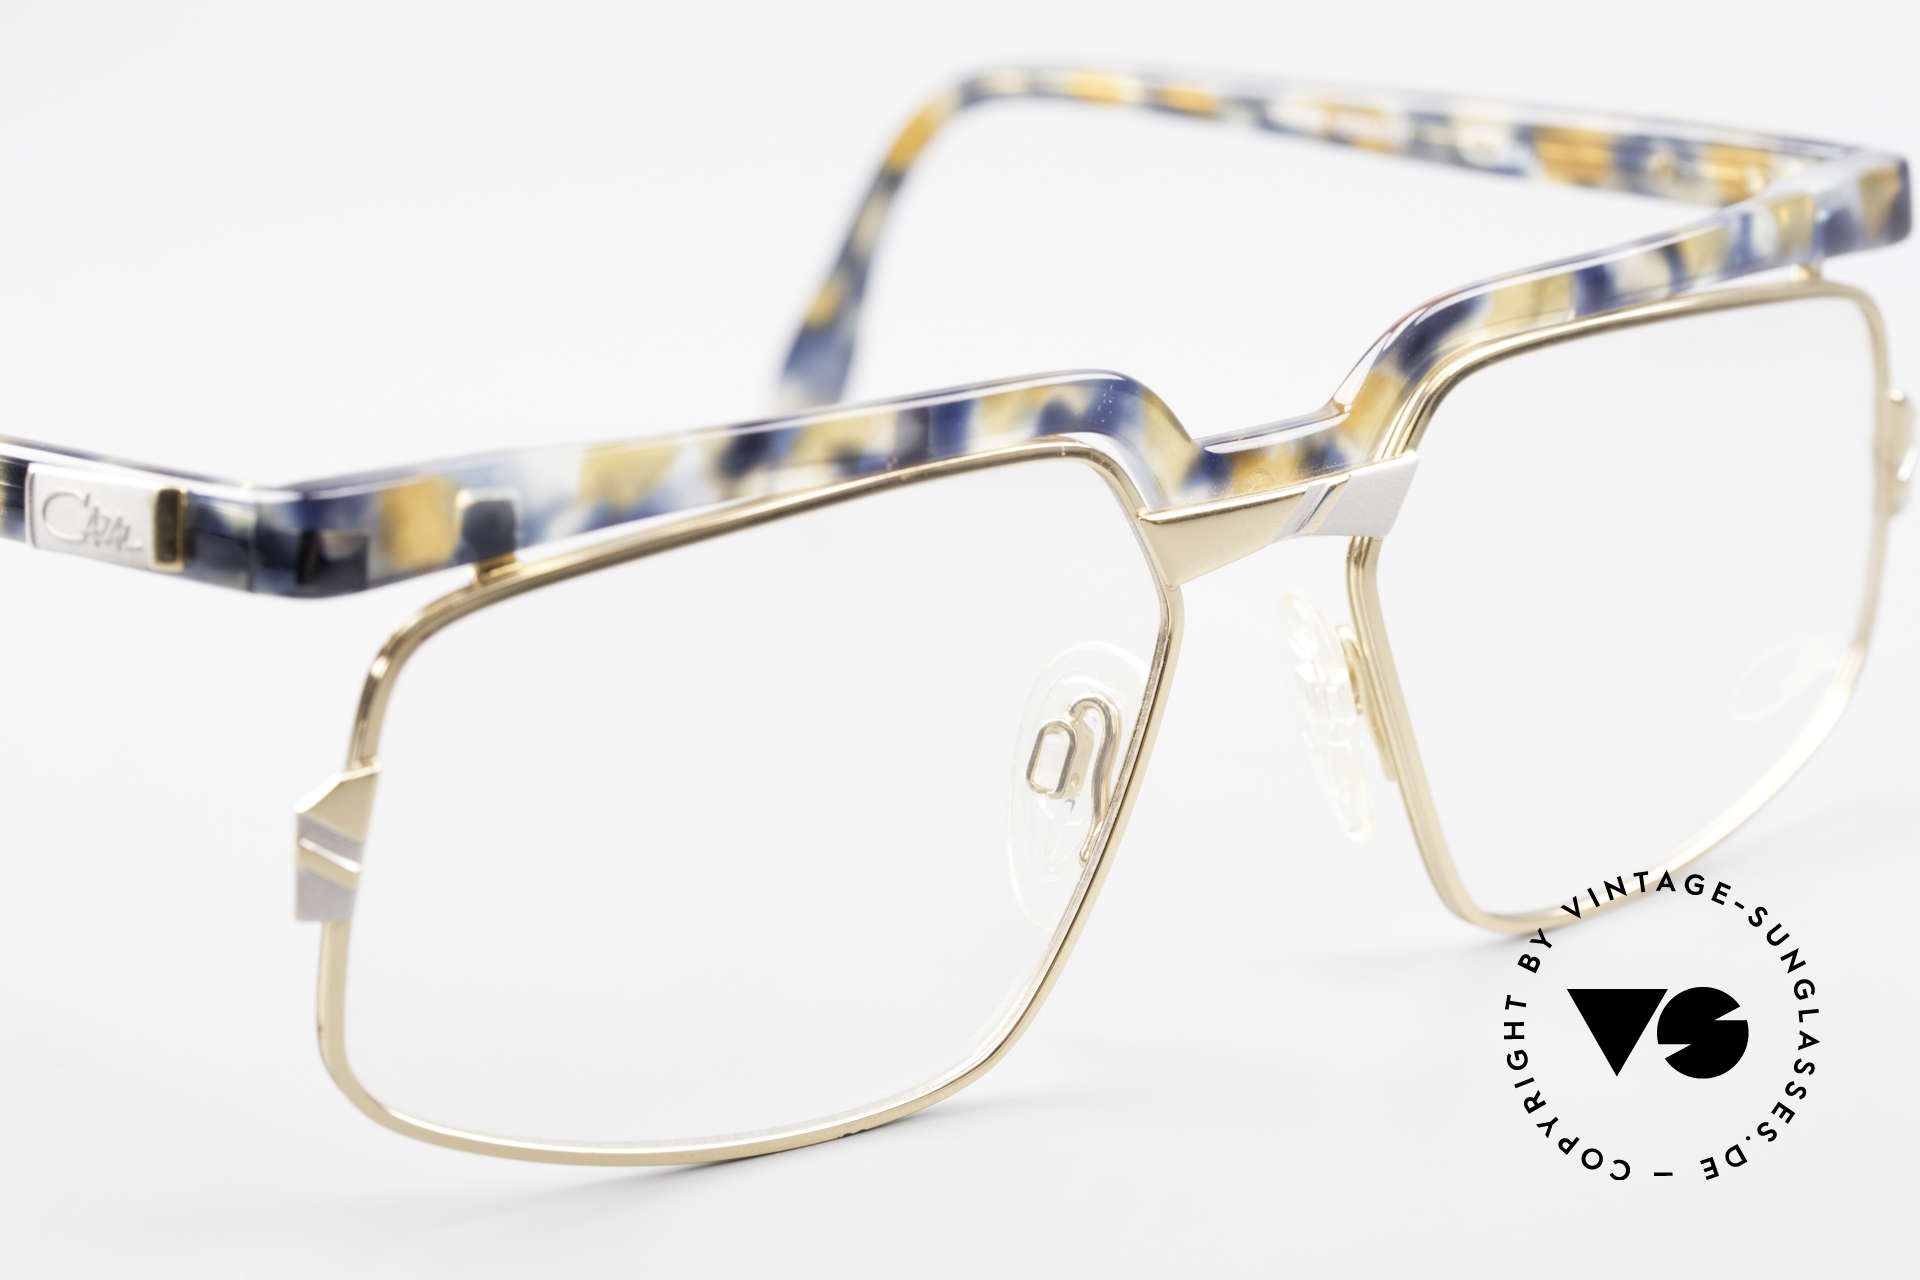 Cazal 246 Extraordinary Vintage Glasses, NO RETRO eyewear, but a 25 years old ORIGINAL, Made for Men and Women